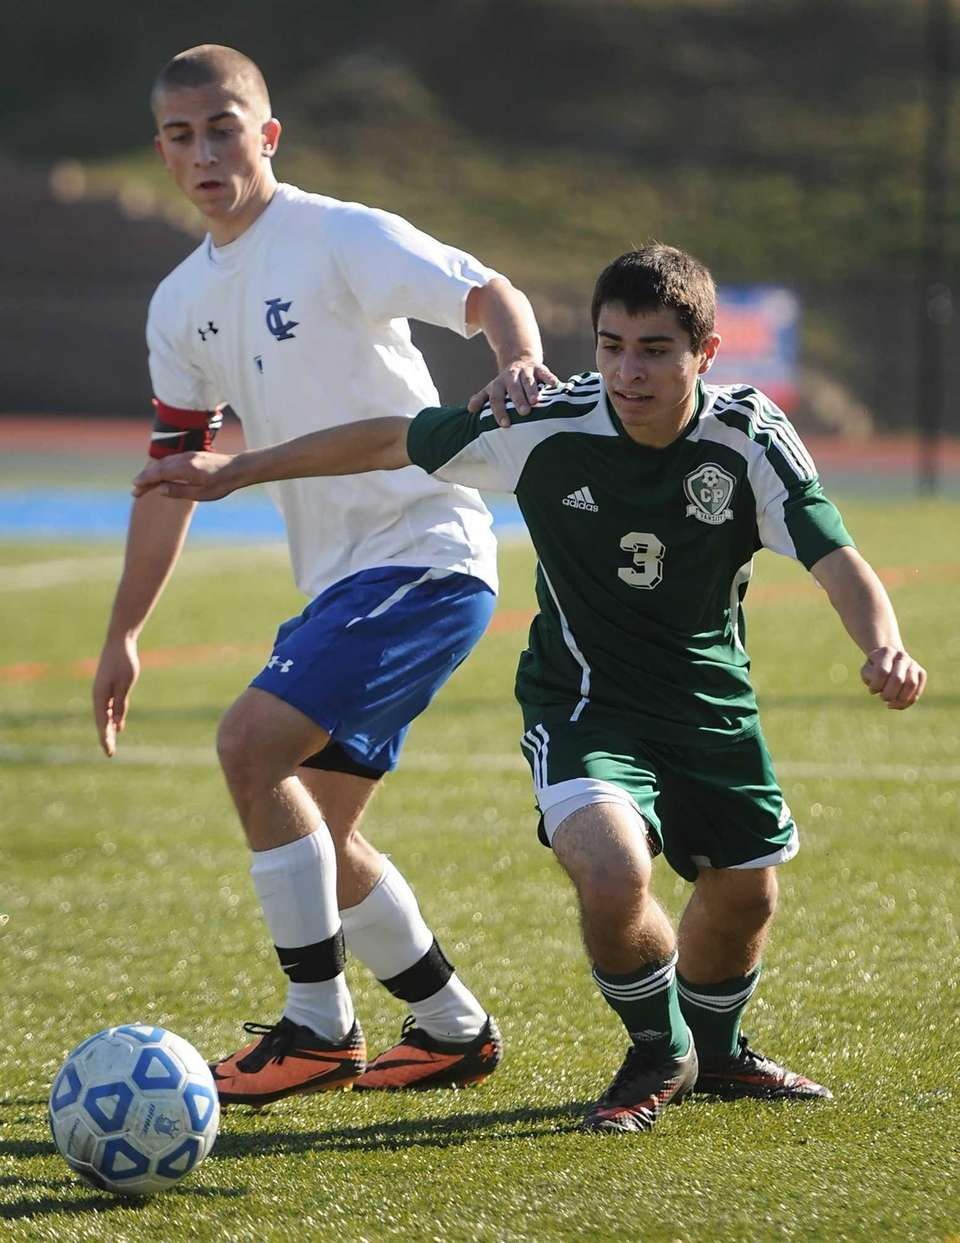 Carle Place's George Costidis, right, dribbles the ball